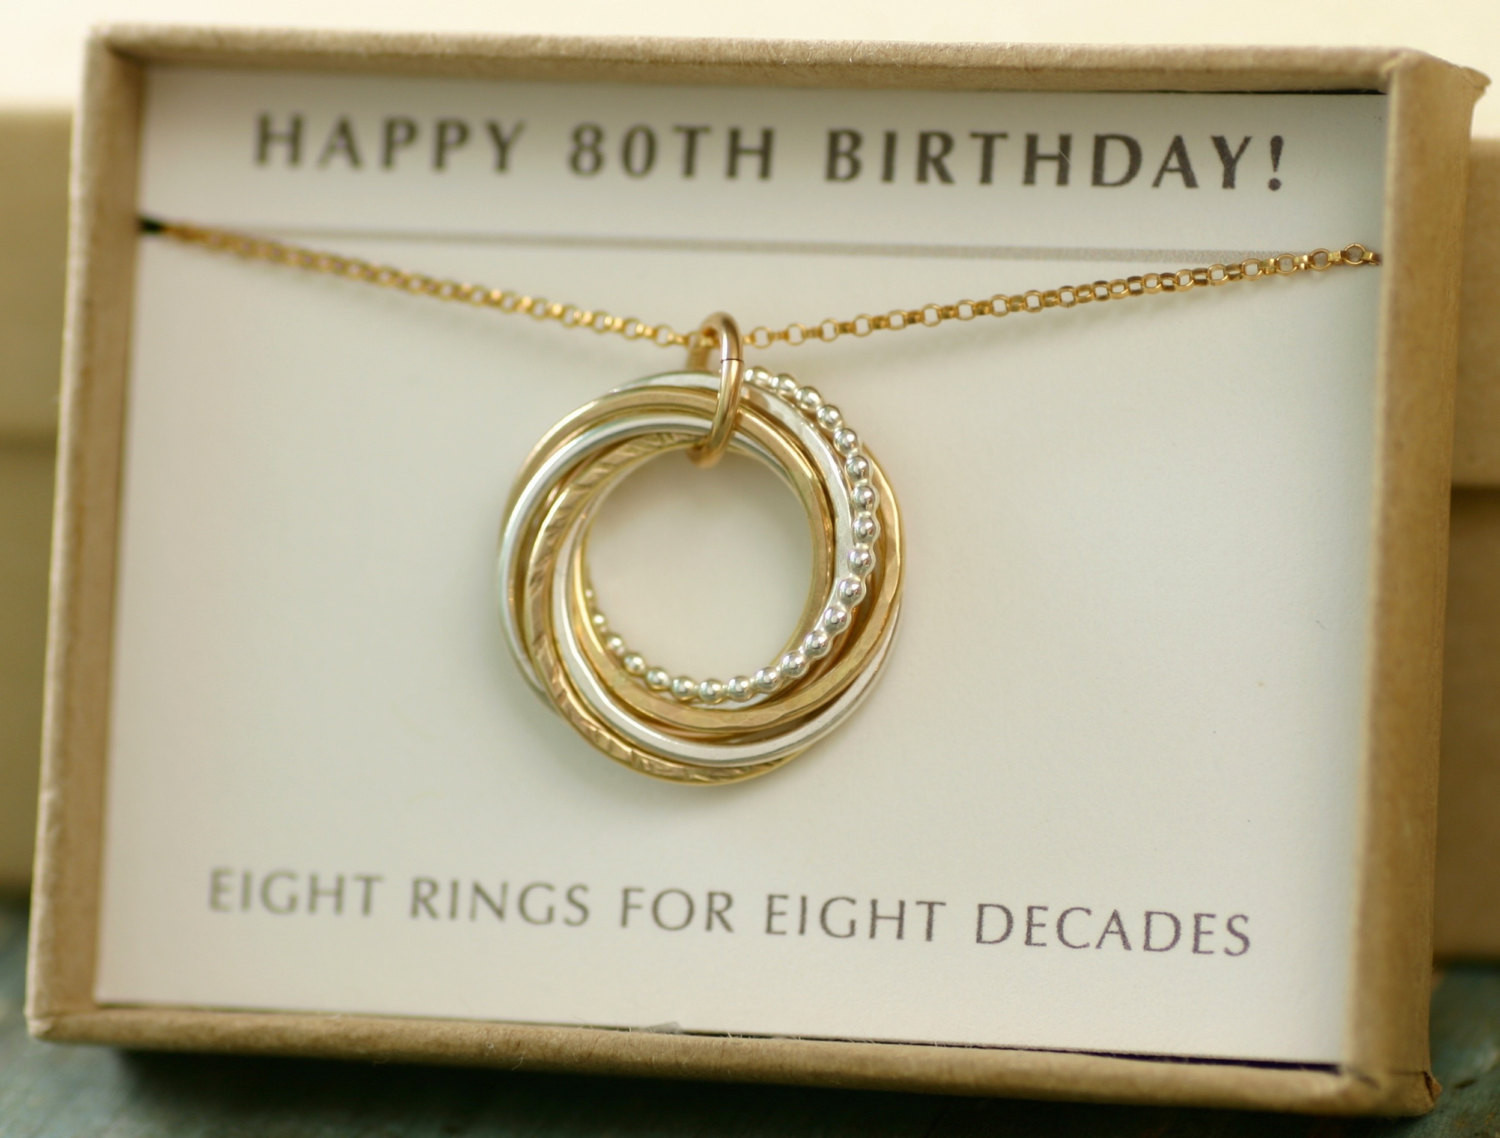 Best ideas about 80th Birthday Gift Ideas . Save or Pin 80th birthday t for her t for mother by ILoveHoneyWillow Now.